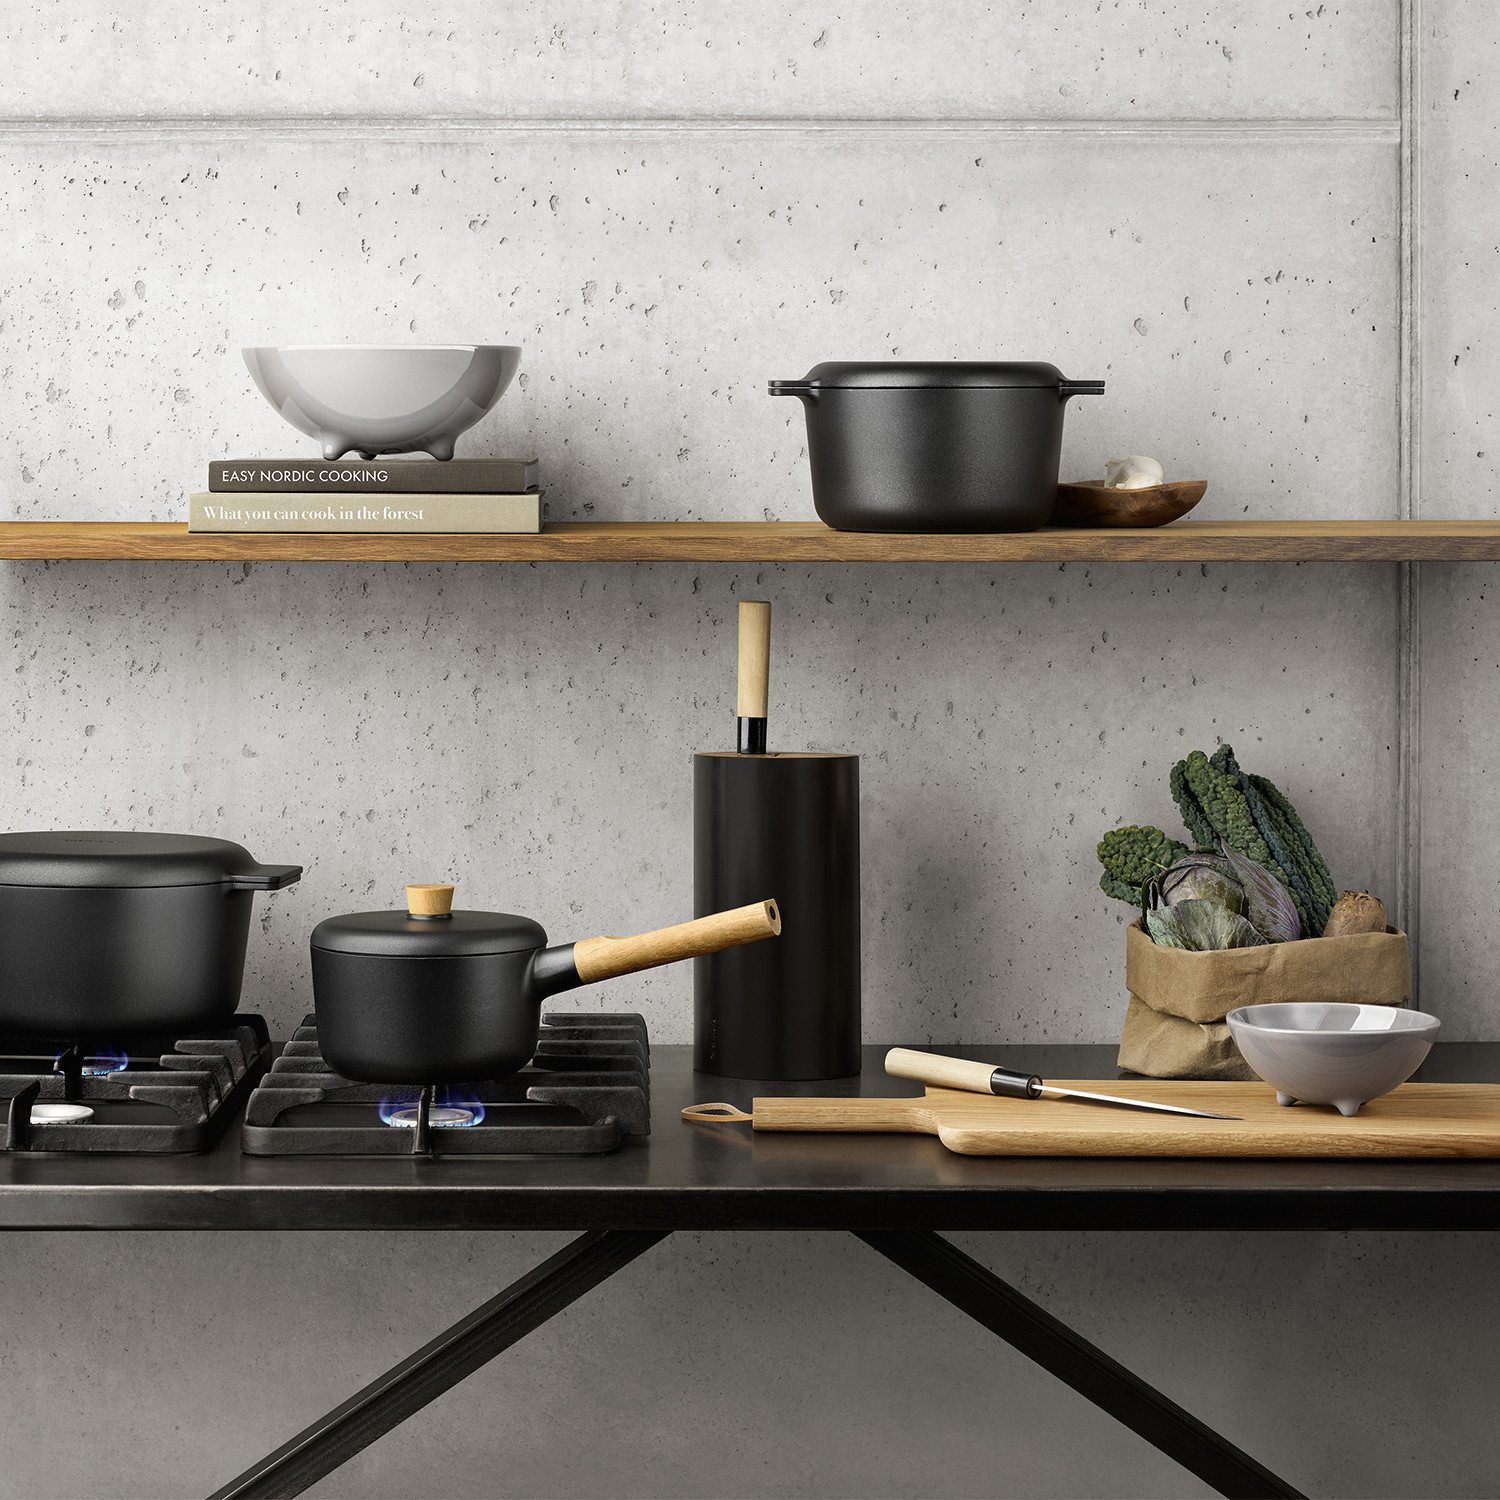 Nordic Kitchen Cookware // Pot (3.0L) - Eva Solo - Touch of Modern